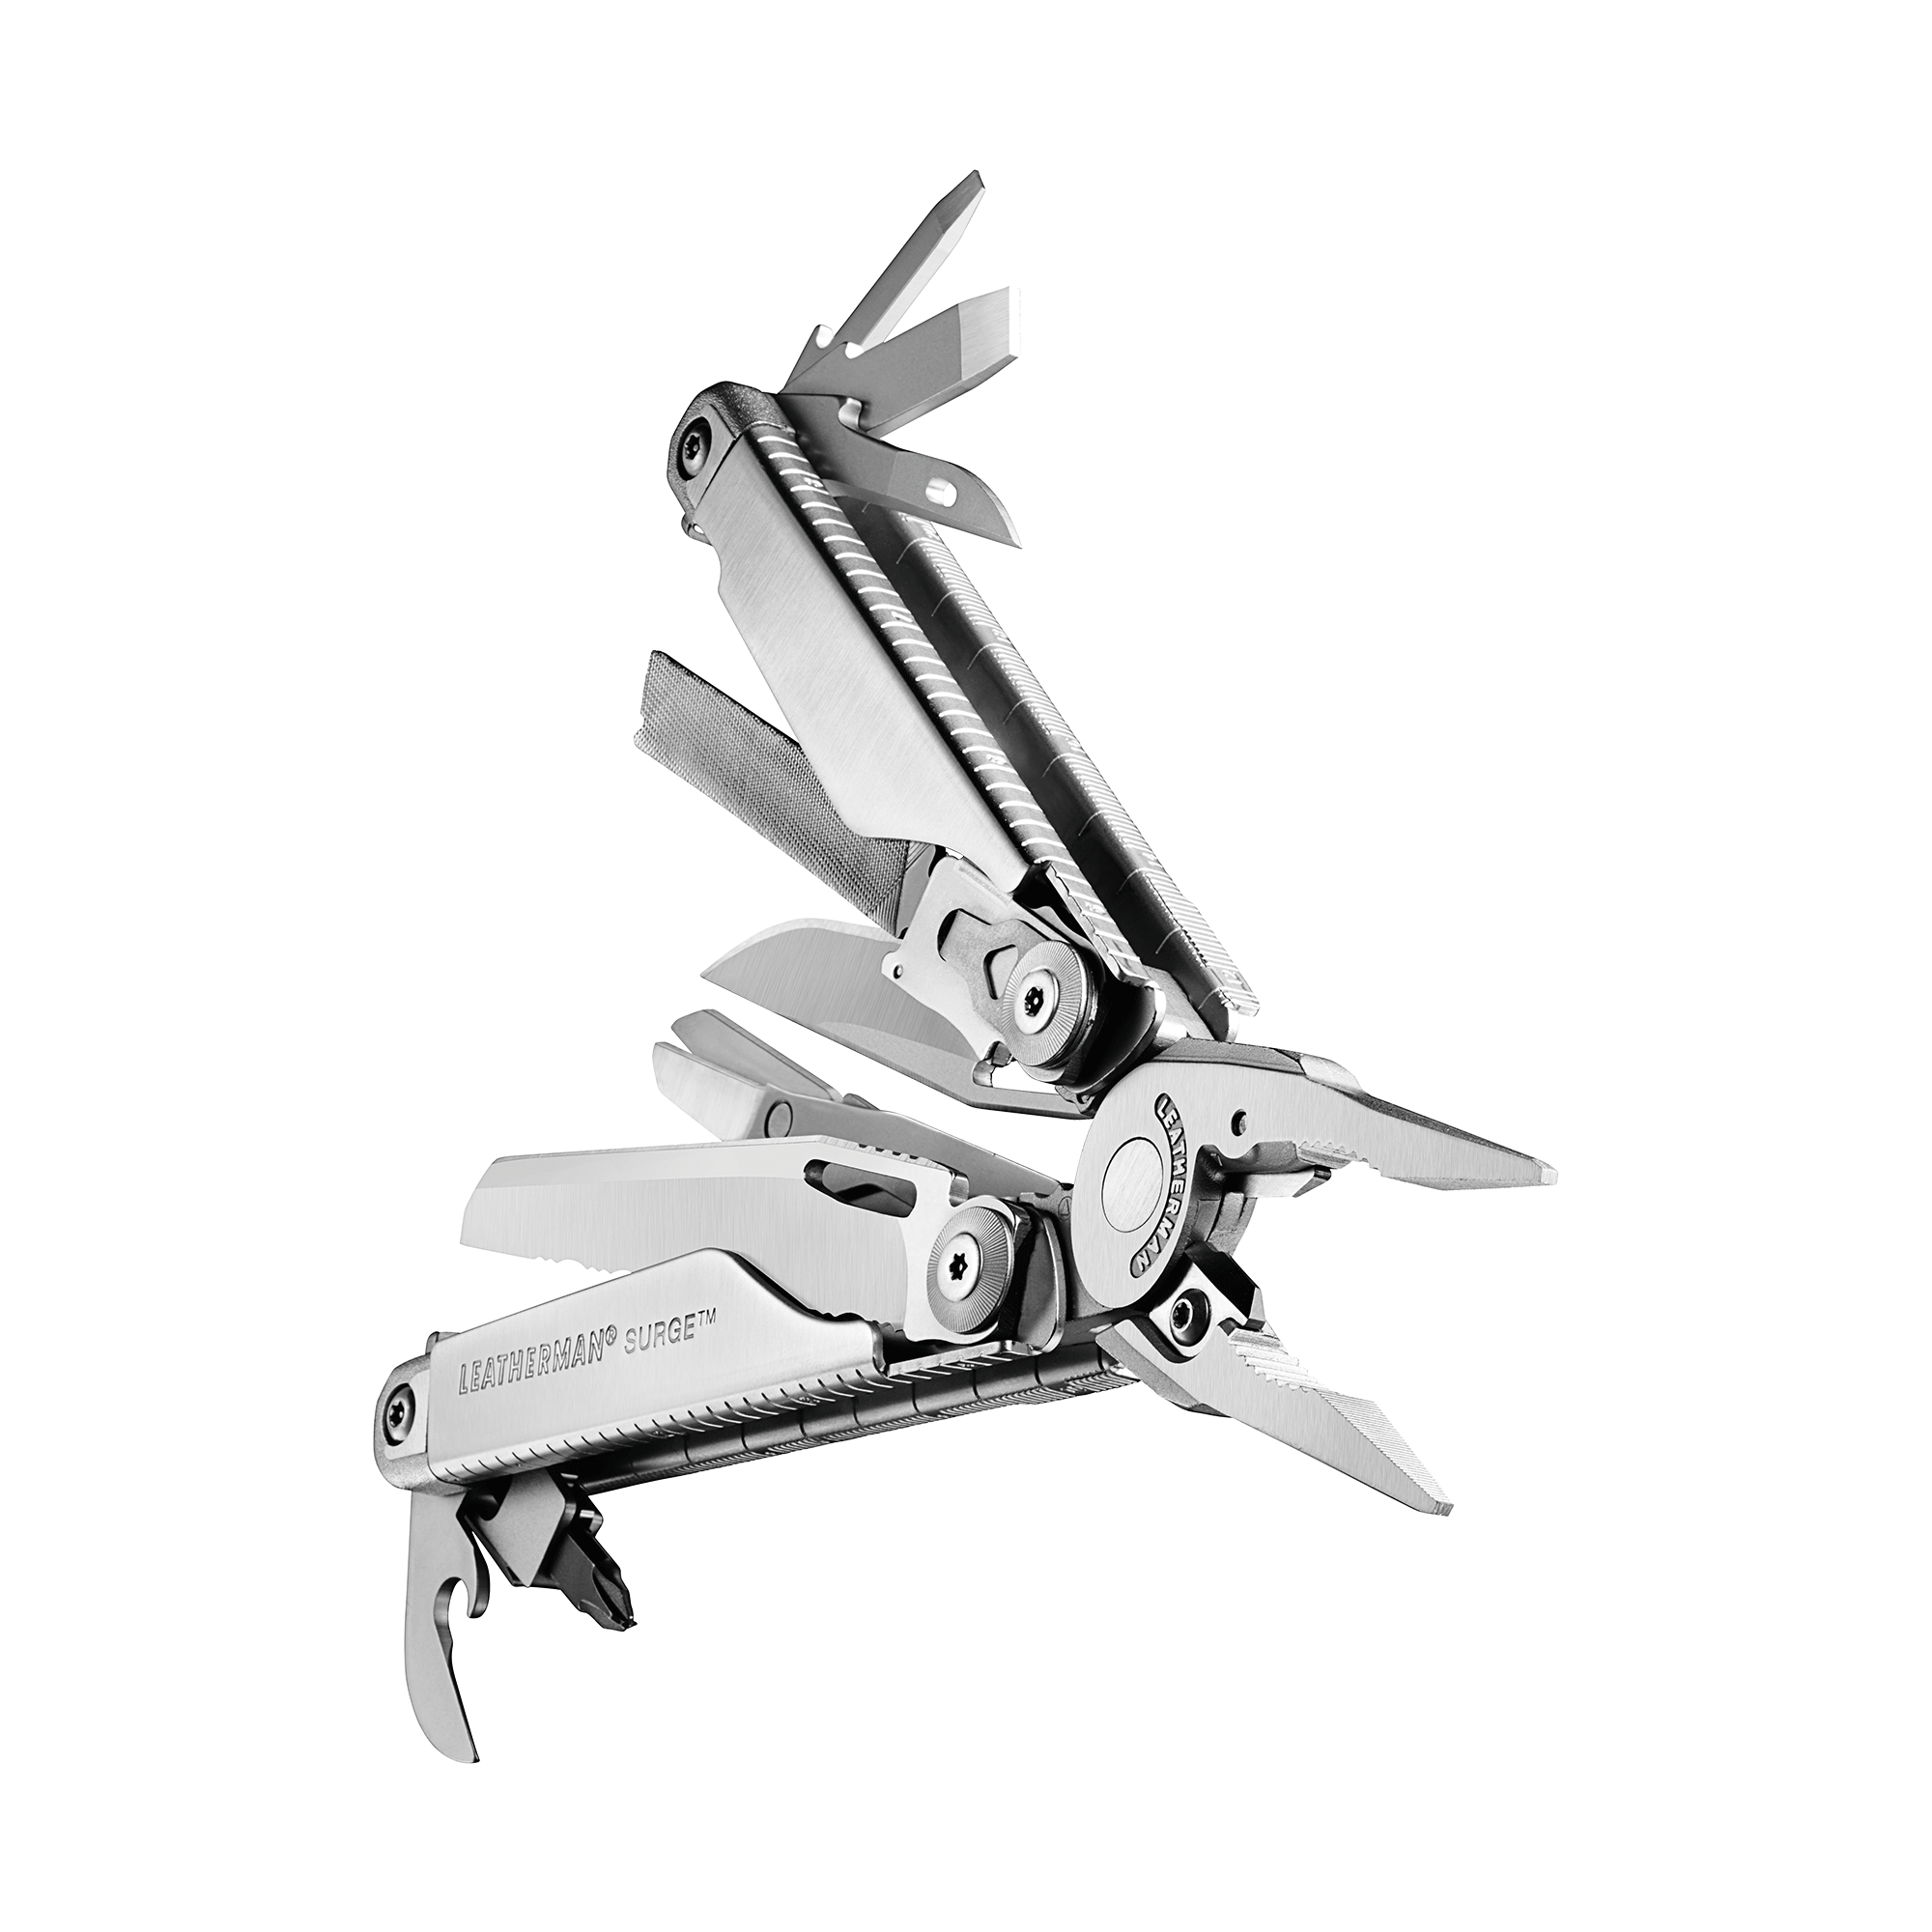 Leatherman Surge multi-tool, stainless steel, heavy duty, 21 tools, angled beauty open fanned view